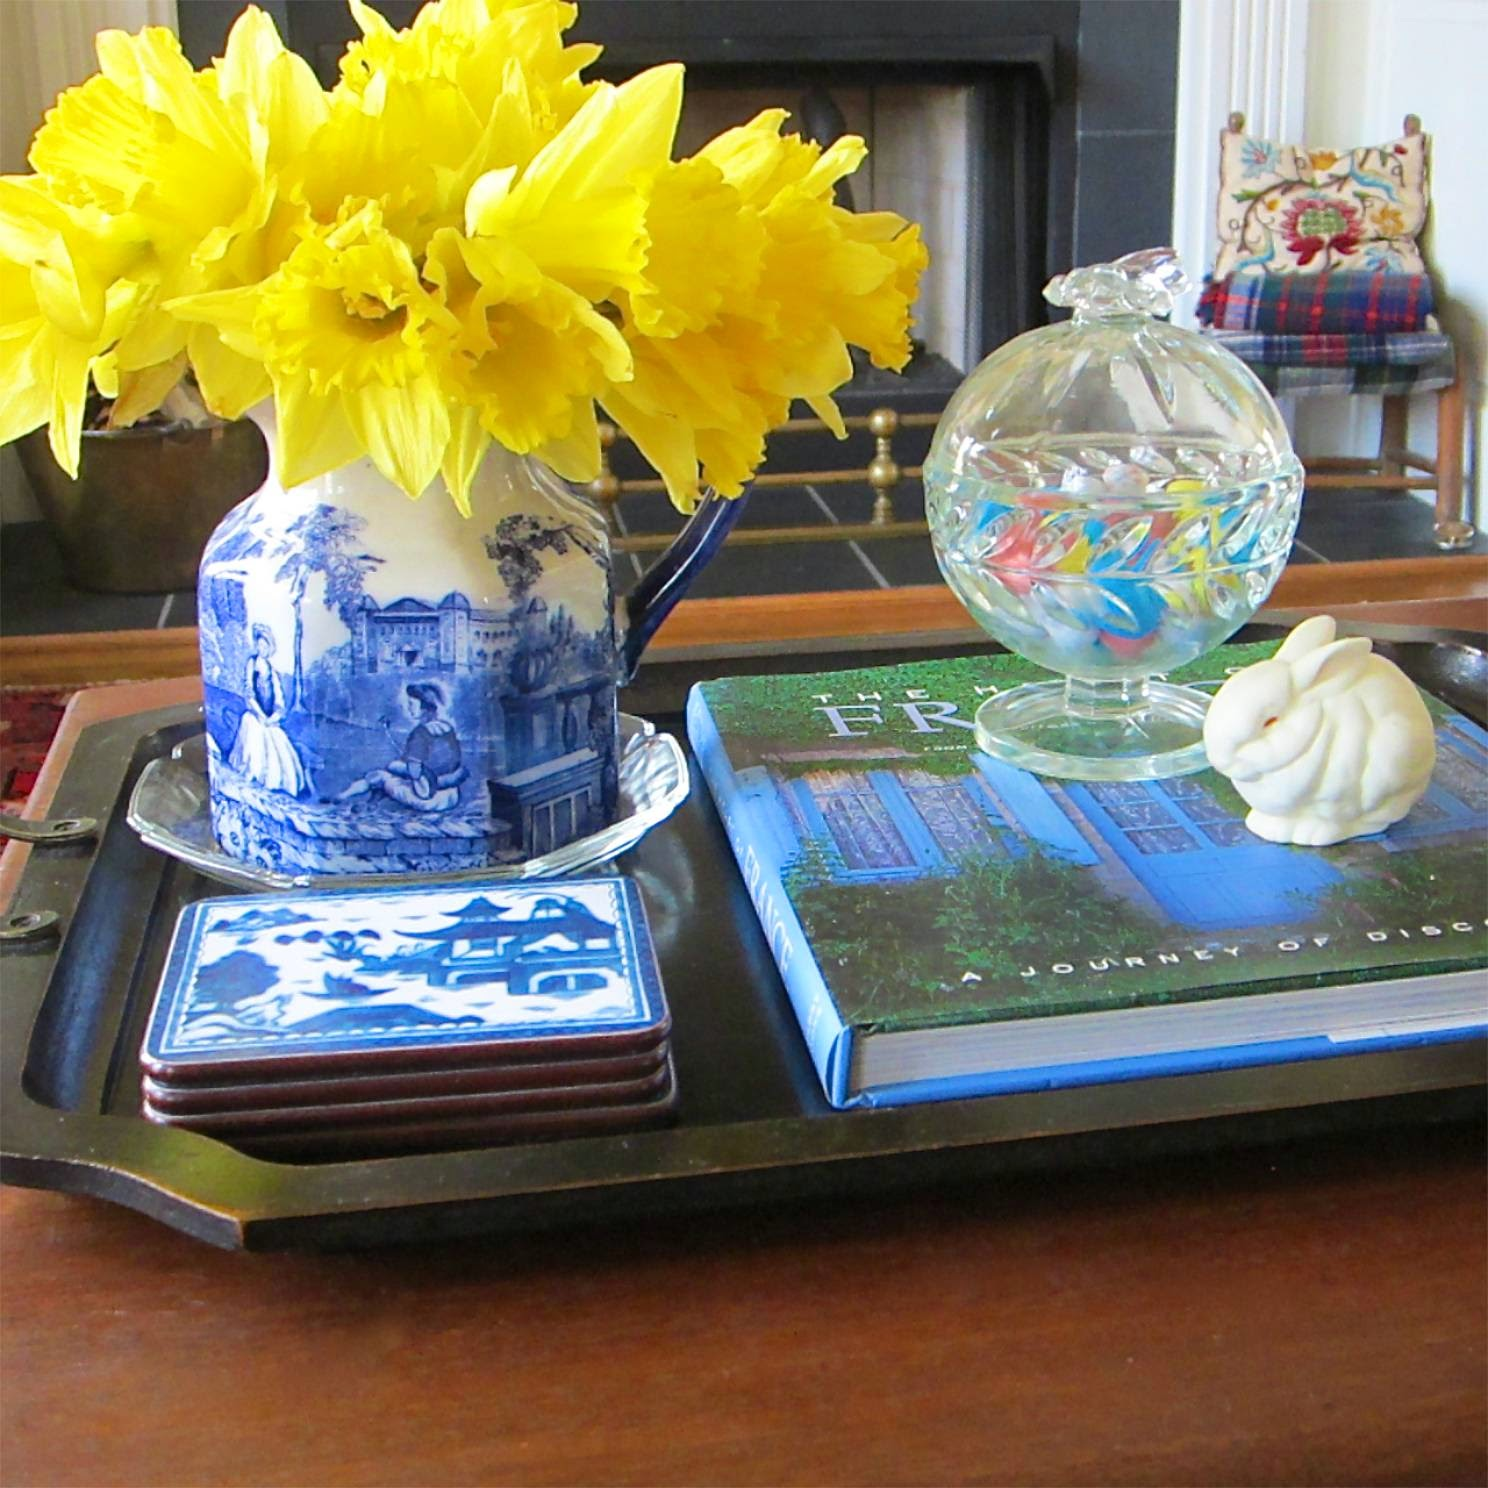 daffodils in blue and white pitcher